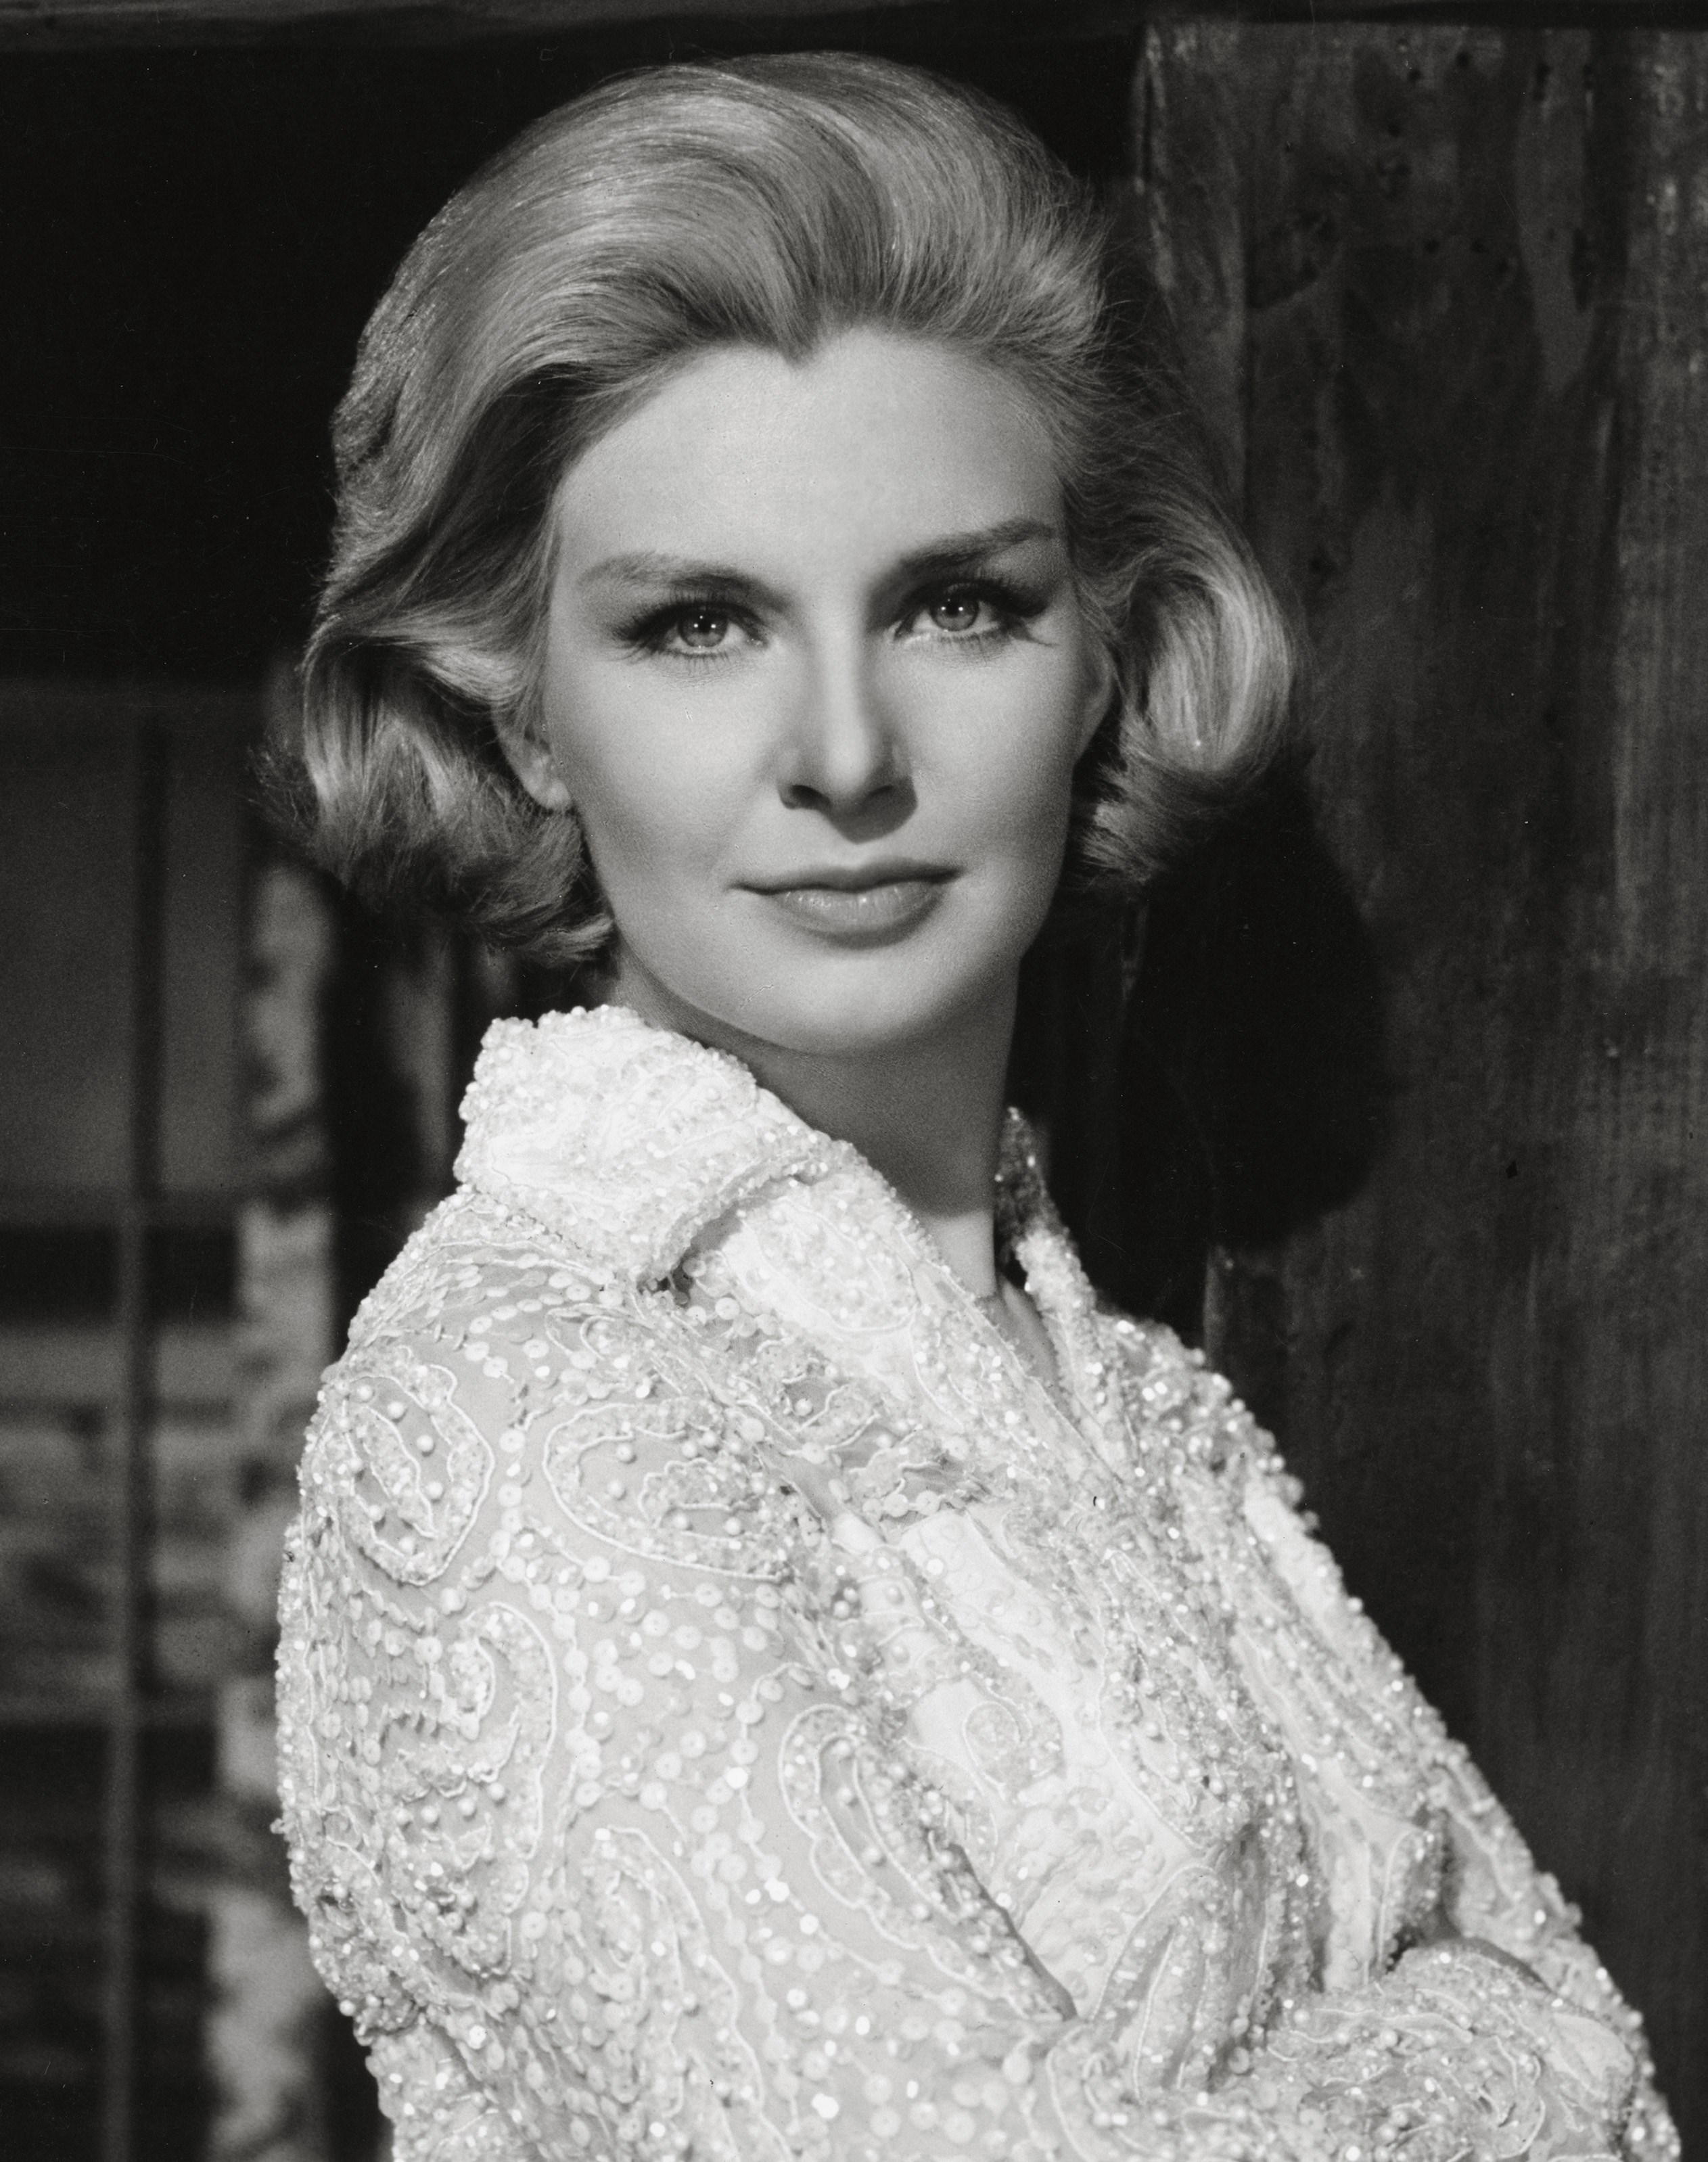 Known people – famous people news and biographiesJoanne Woodward